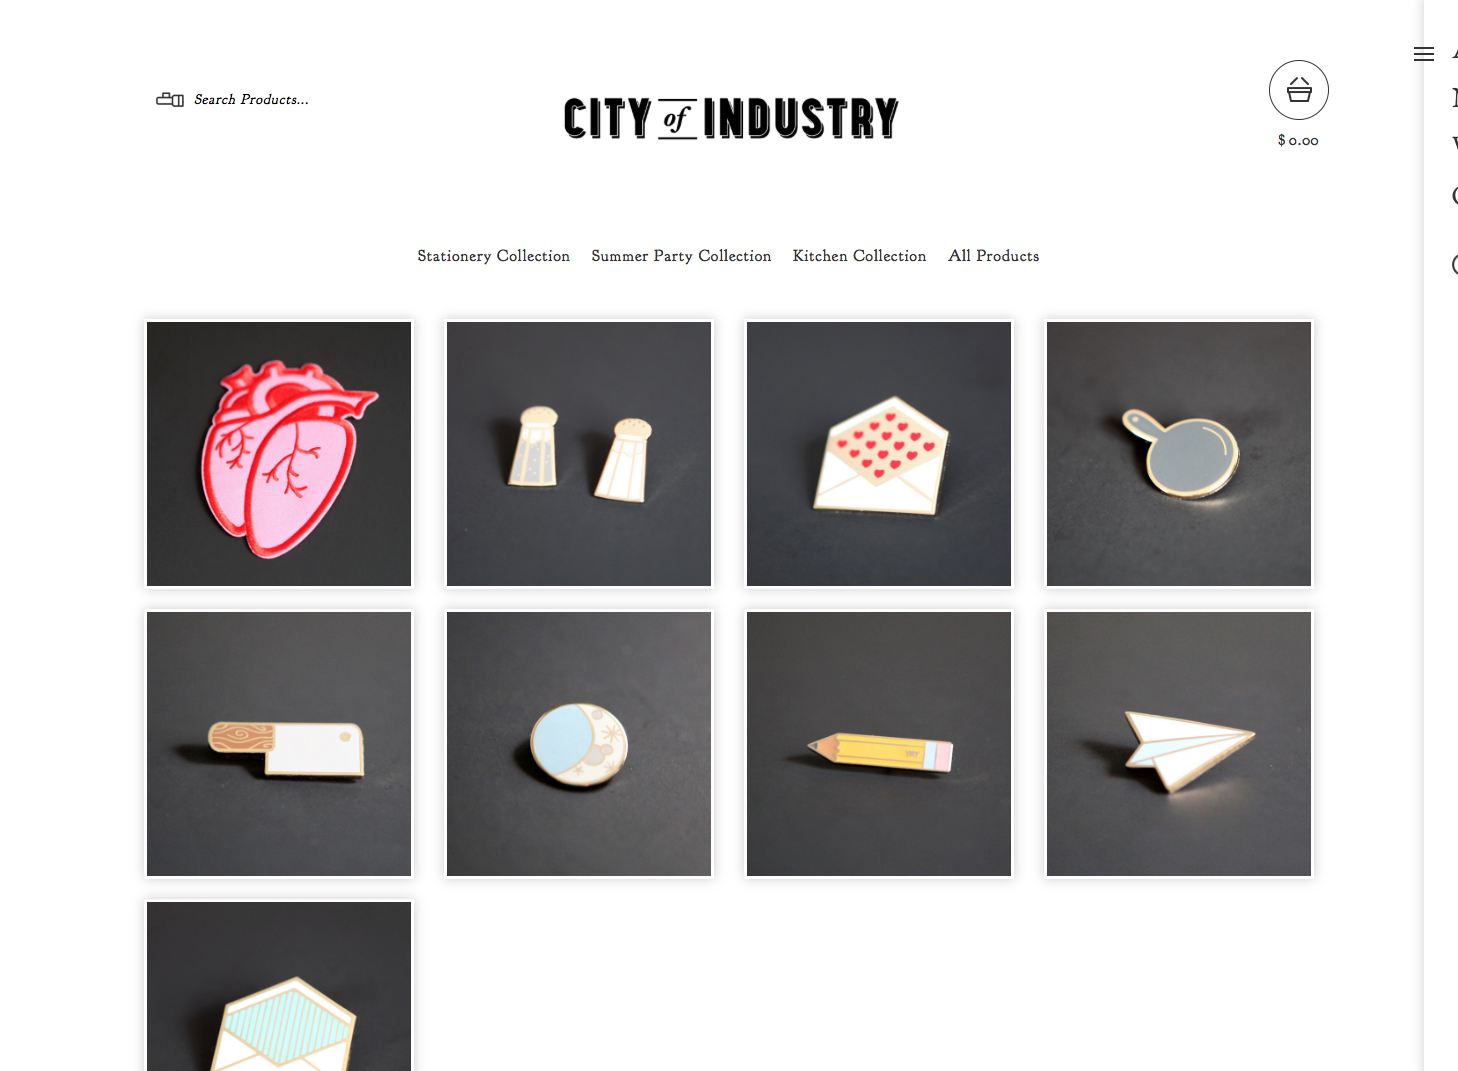 City of Industry - image 2 - student project